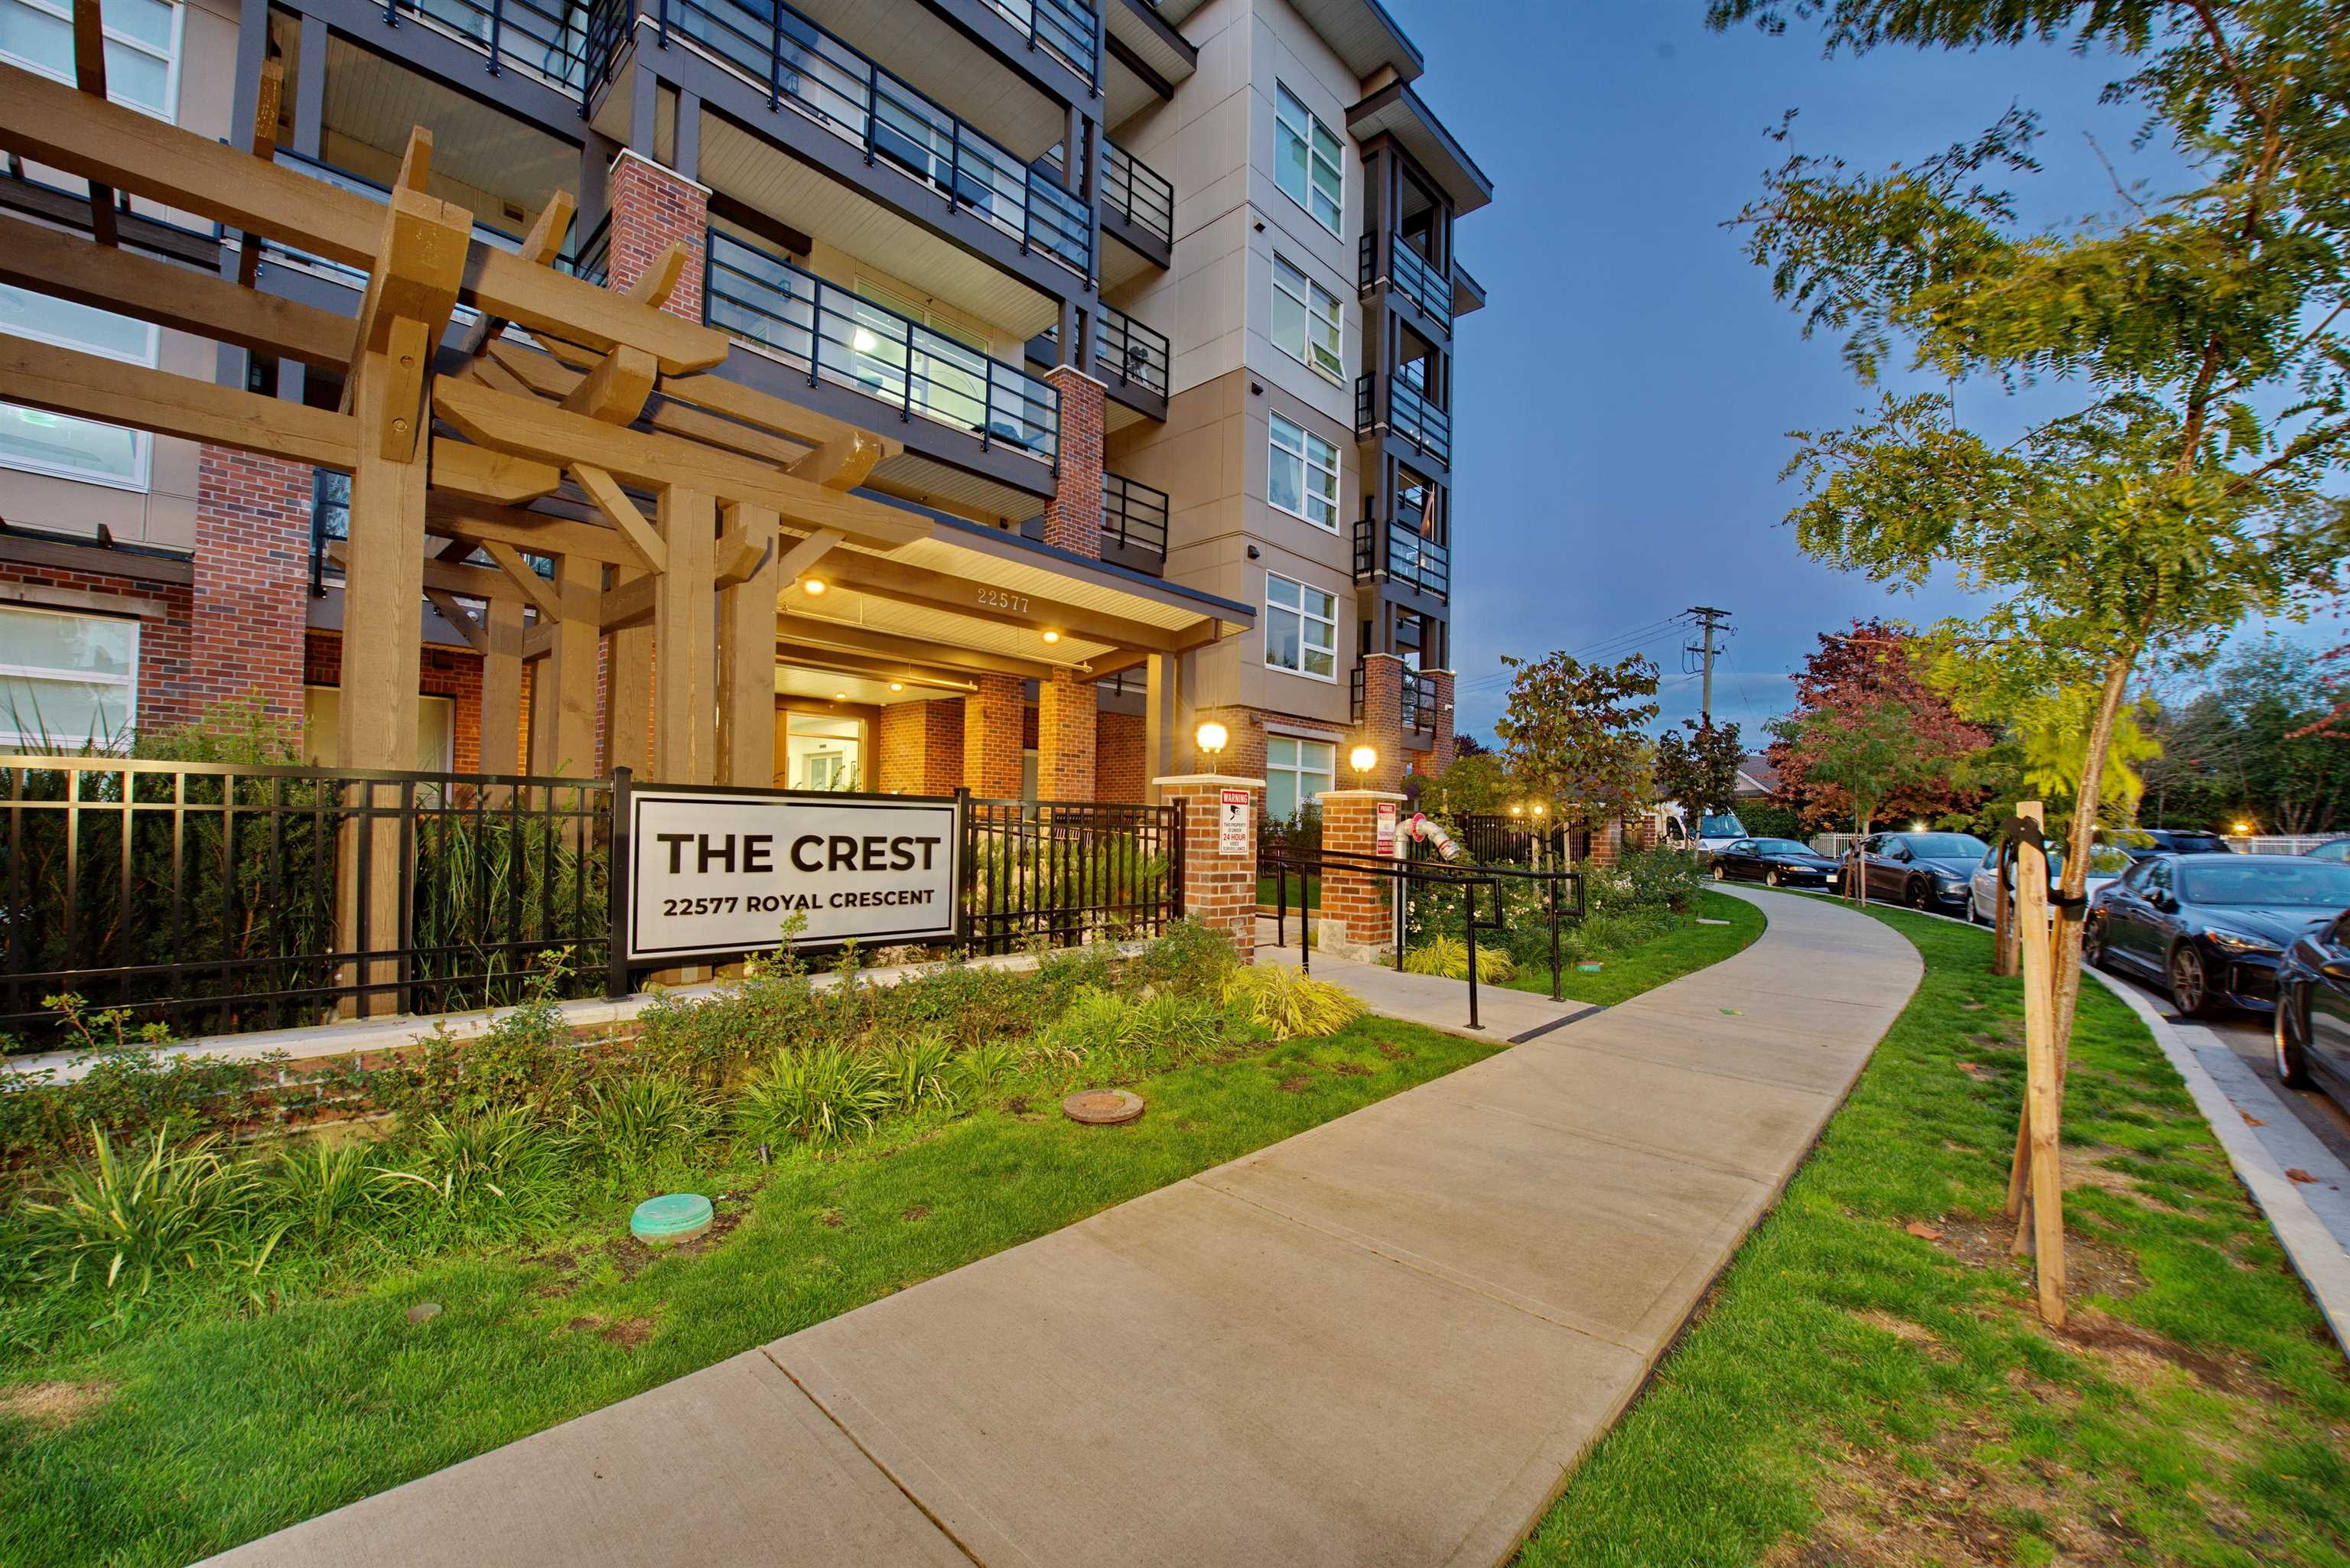 108 22577 ROYAL CRESCENT - East Central Apartment/Condo for sale, 2 Bedrooms (R2625662) - #29